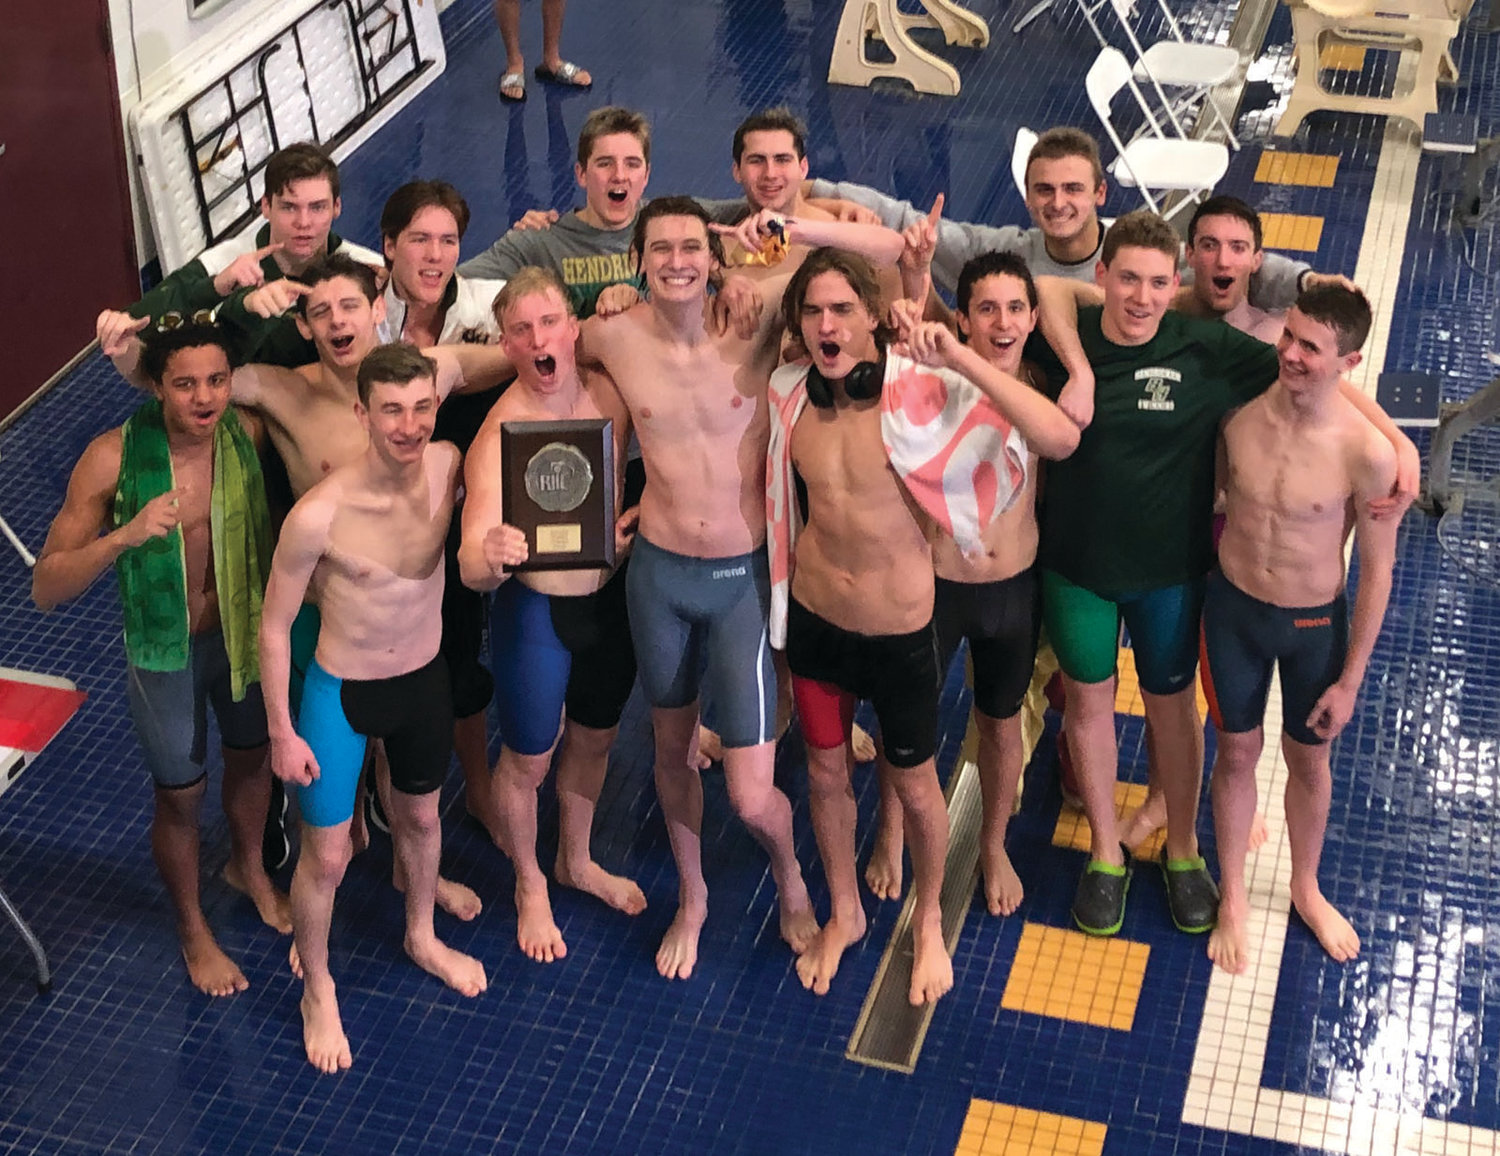 DIVISION CHAMPS: The Bishop Hendricken swimming team celebrates after winning the Division I Championship last weekend. The Hawks will now move on to this weekend's state championship meet, where they look to claim their 28th title in 29 years.